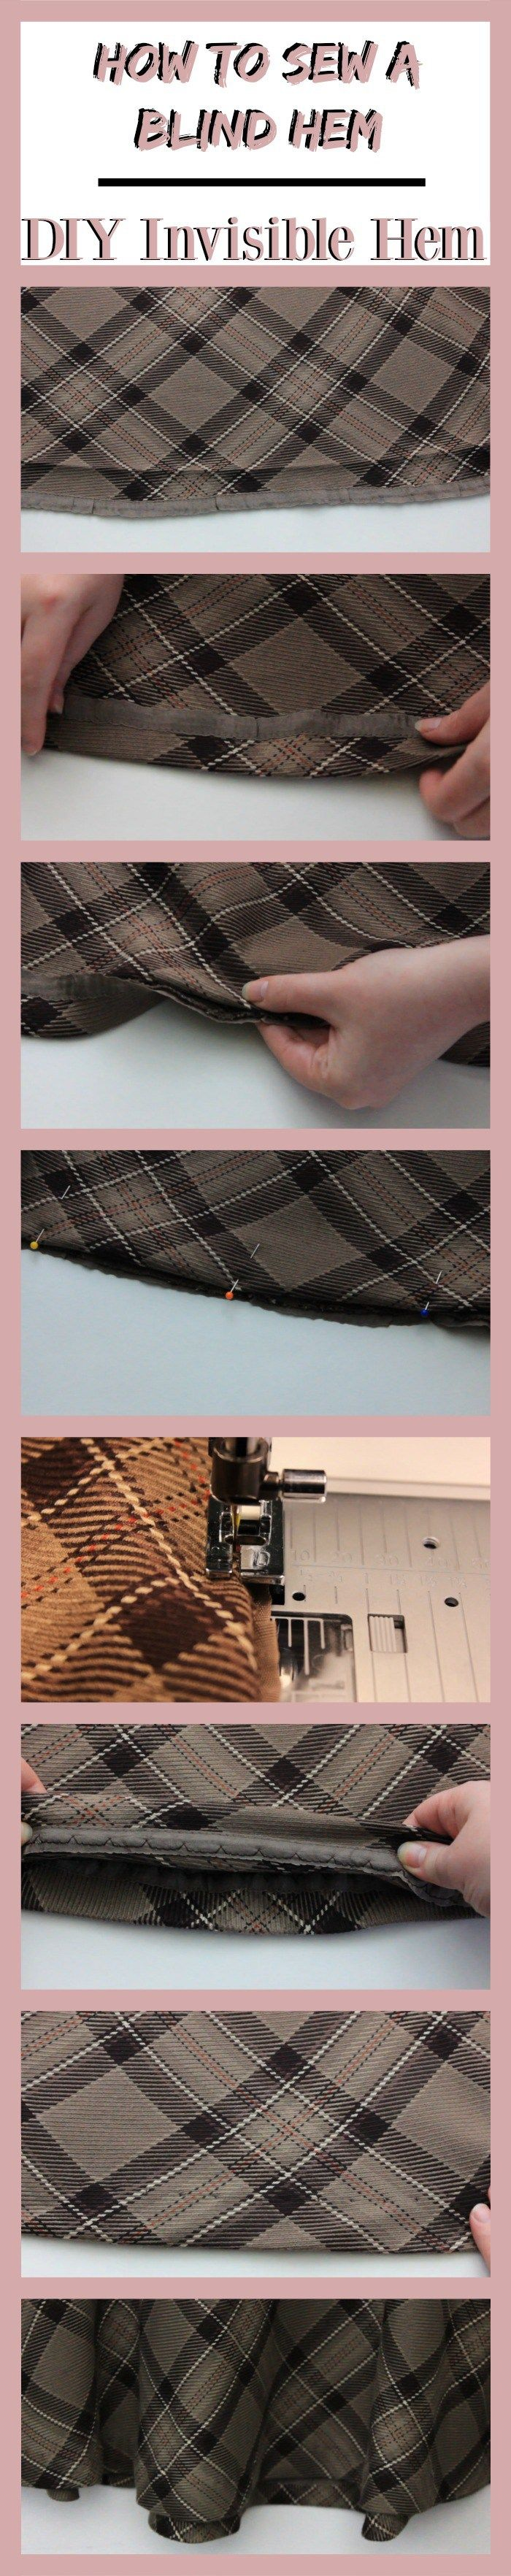 How To Sew A Blind Hem With A Sewing Machine | DIY Invisible Hem - The Awl Nighter